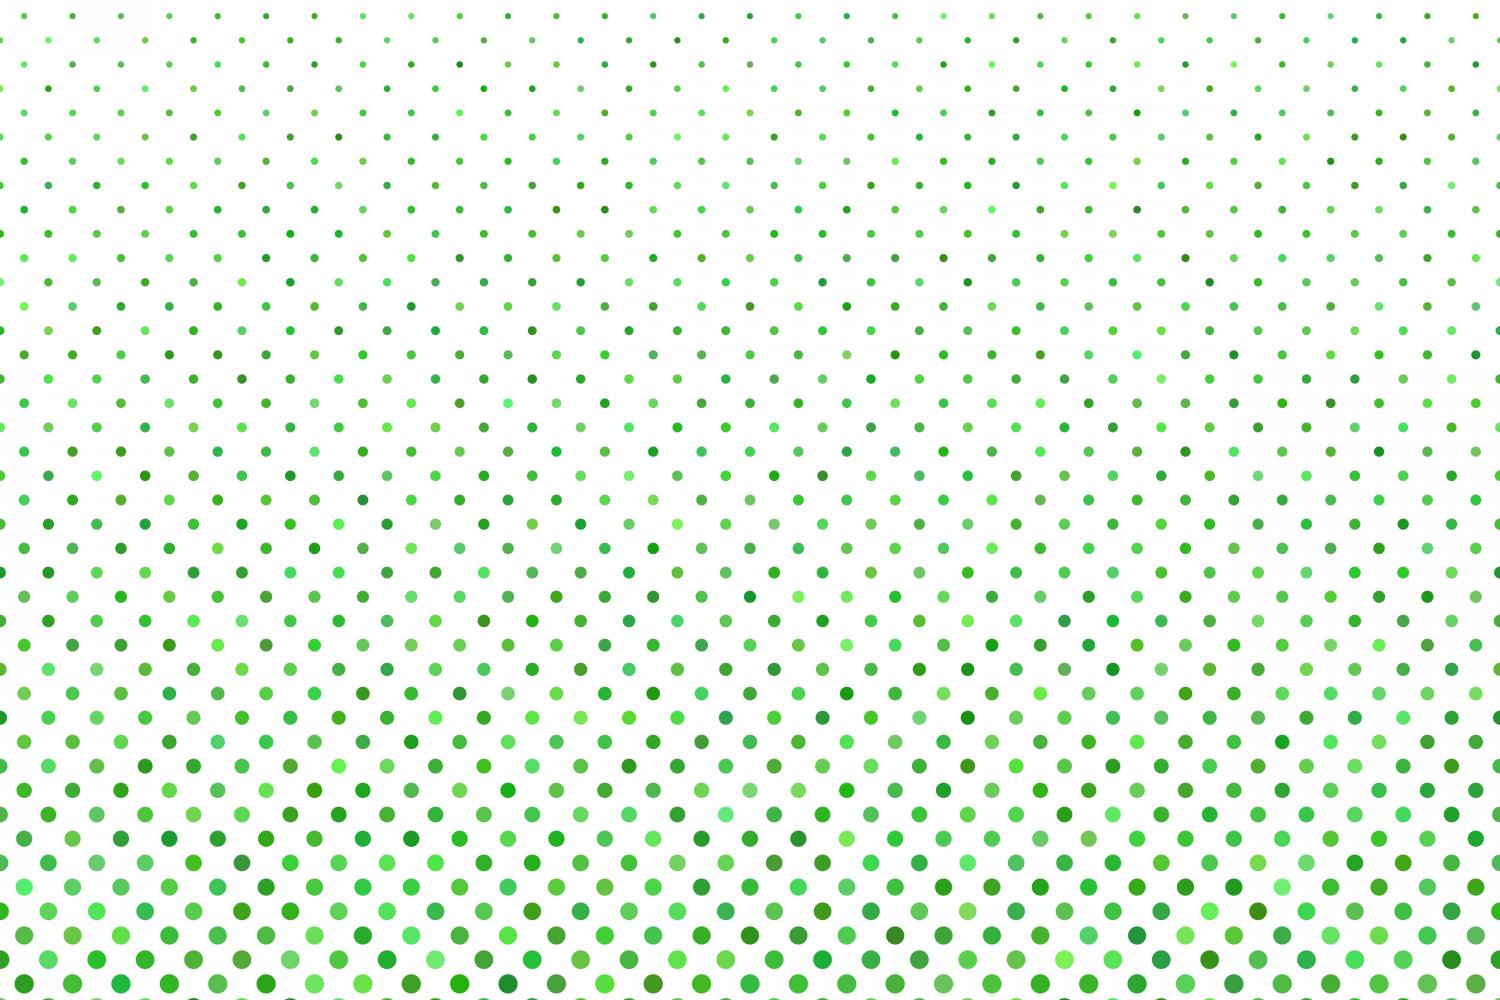 Download Free Green Dot Pattern Graphic By Davidzydd Creative Fabrica for Cricut Explore, Silhouette and other cutting machines.